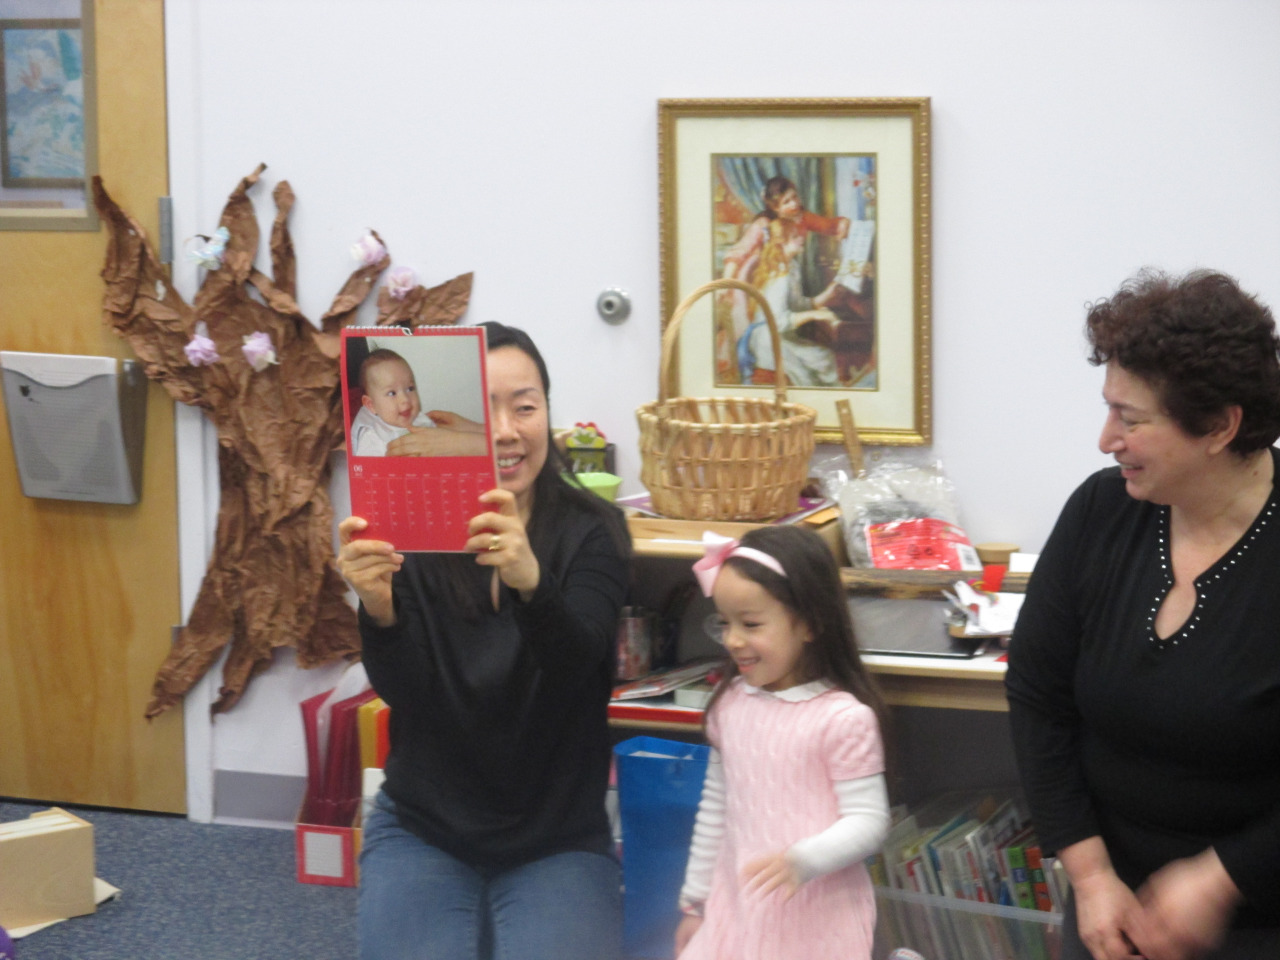 The Primary 1 class celebrated a milestone for a friend who turned five years old this month. The birthday child's parents helped the class celebrate this proud moment for the birthday girl and very graciously donated books for the class library.